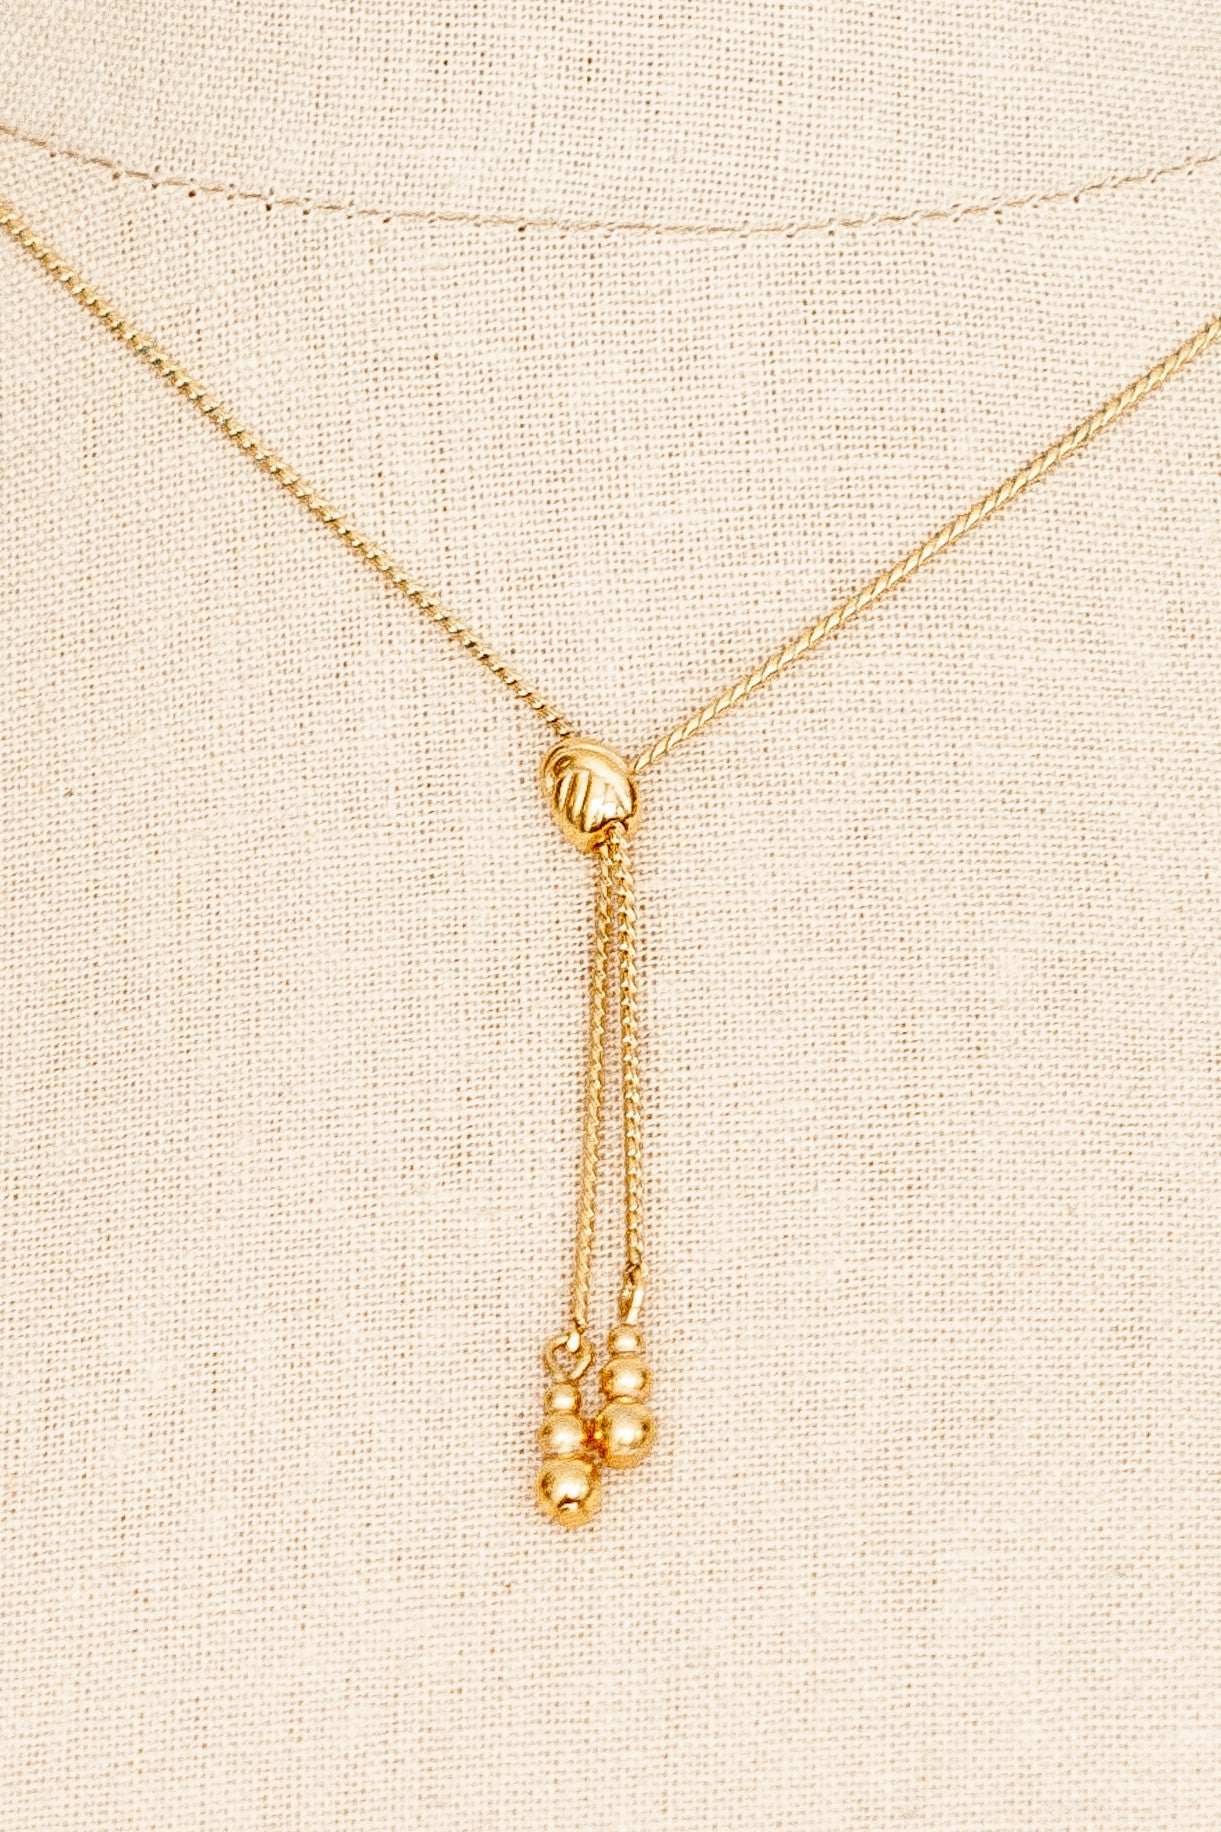 70's__Monet__Dainty Lariat Necklace